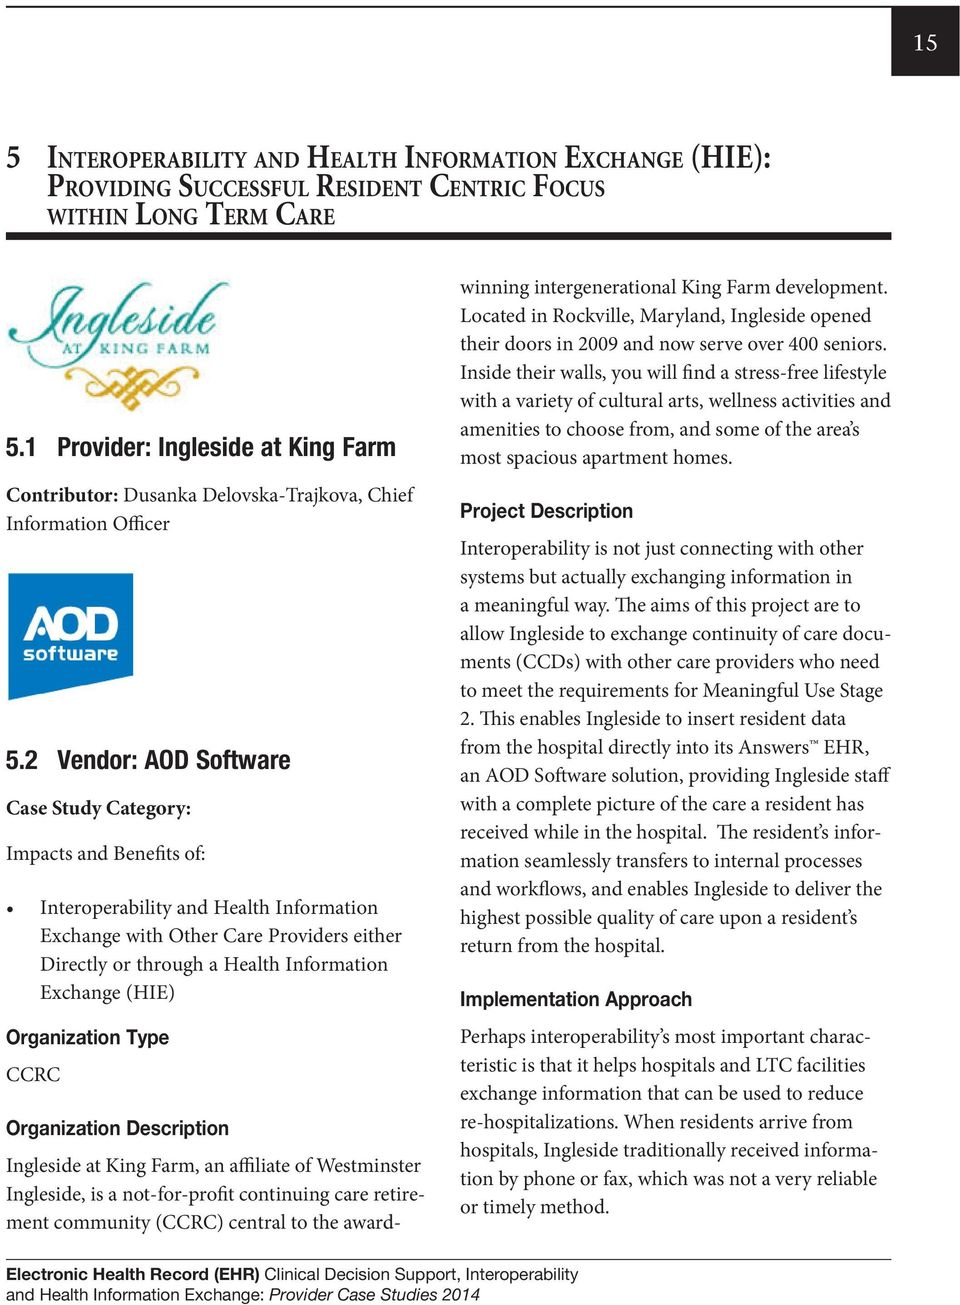 2 Vendor: AOD Software Case Study Category: Impacts and Benefits of: Interoperability and Health Information Exchange with Other Care Providers either Directly or through a Health Information